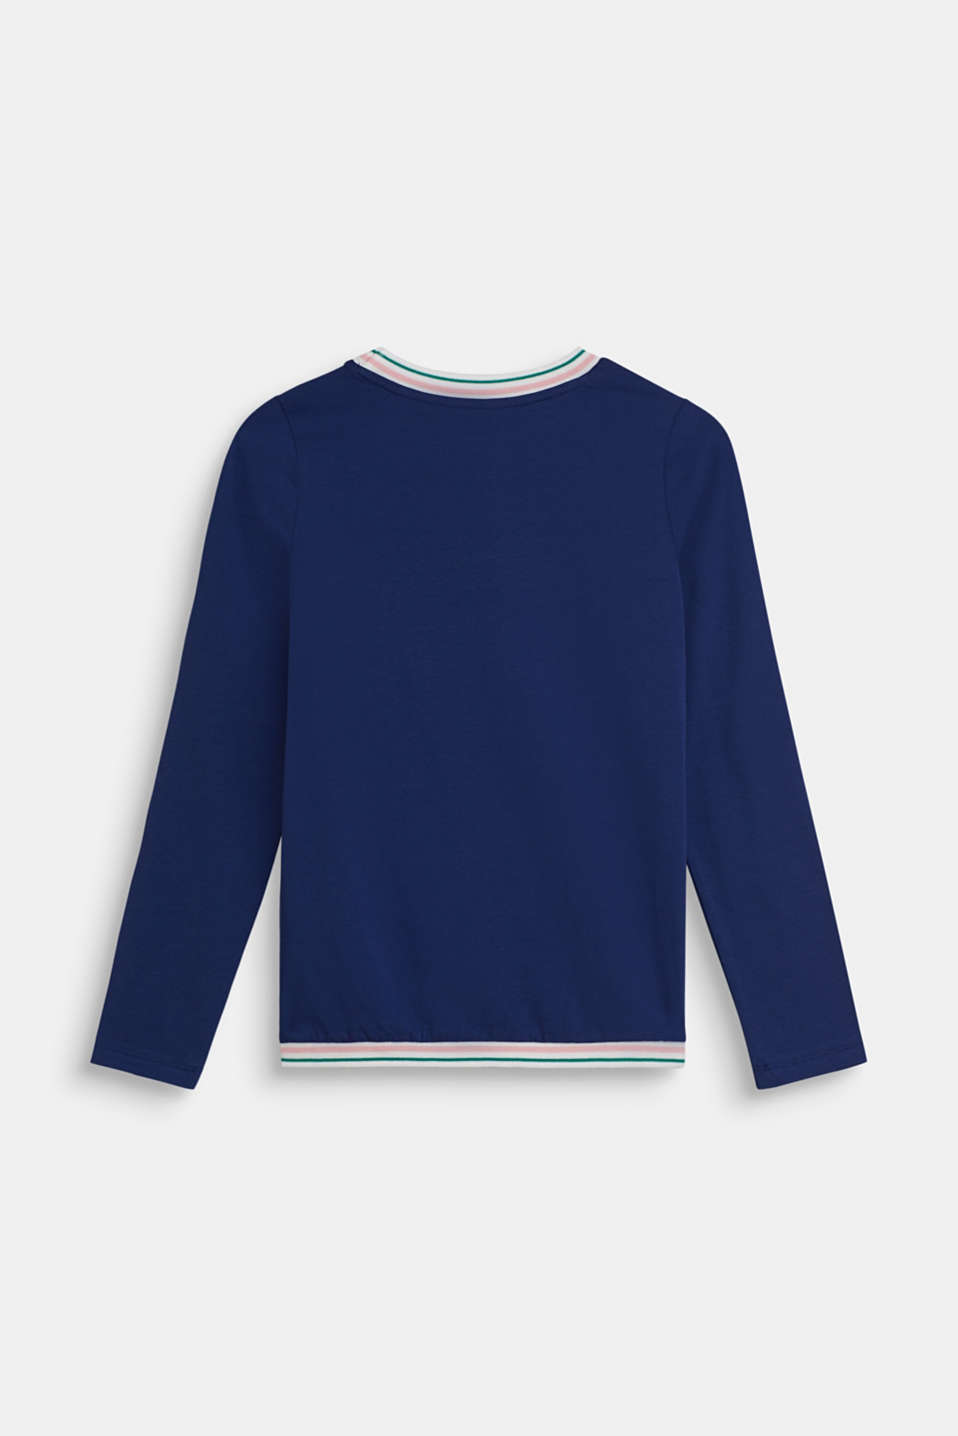 Long sleeve top with sequins, made of stretch cotton, LCMARINE BLUE, detail image number 1